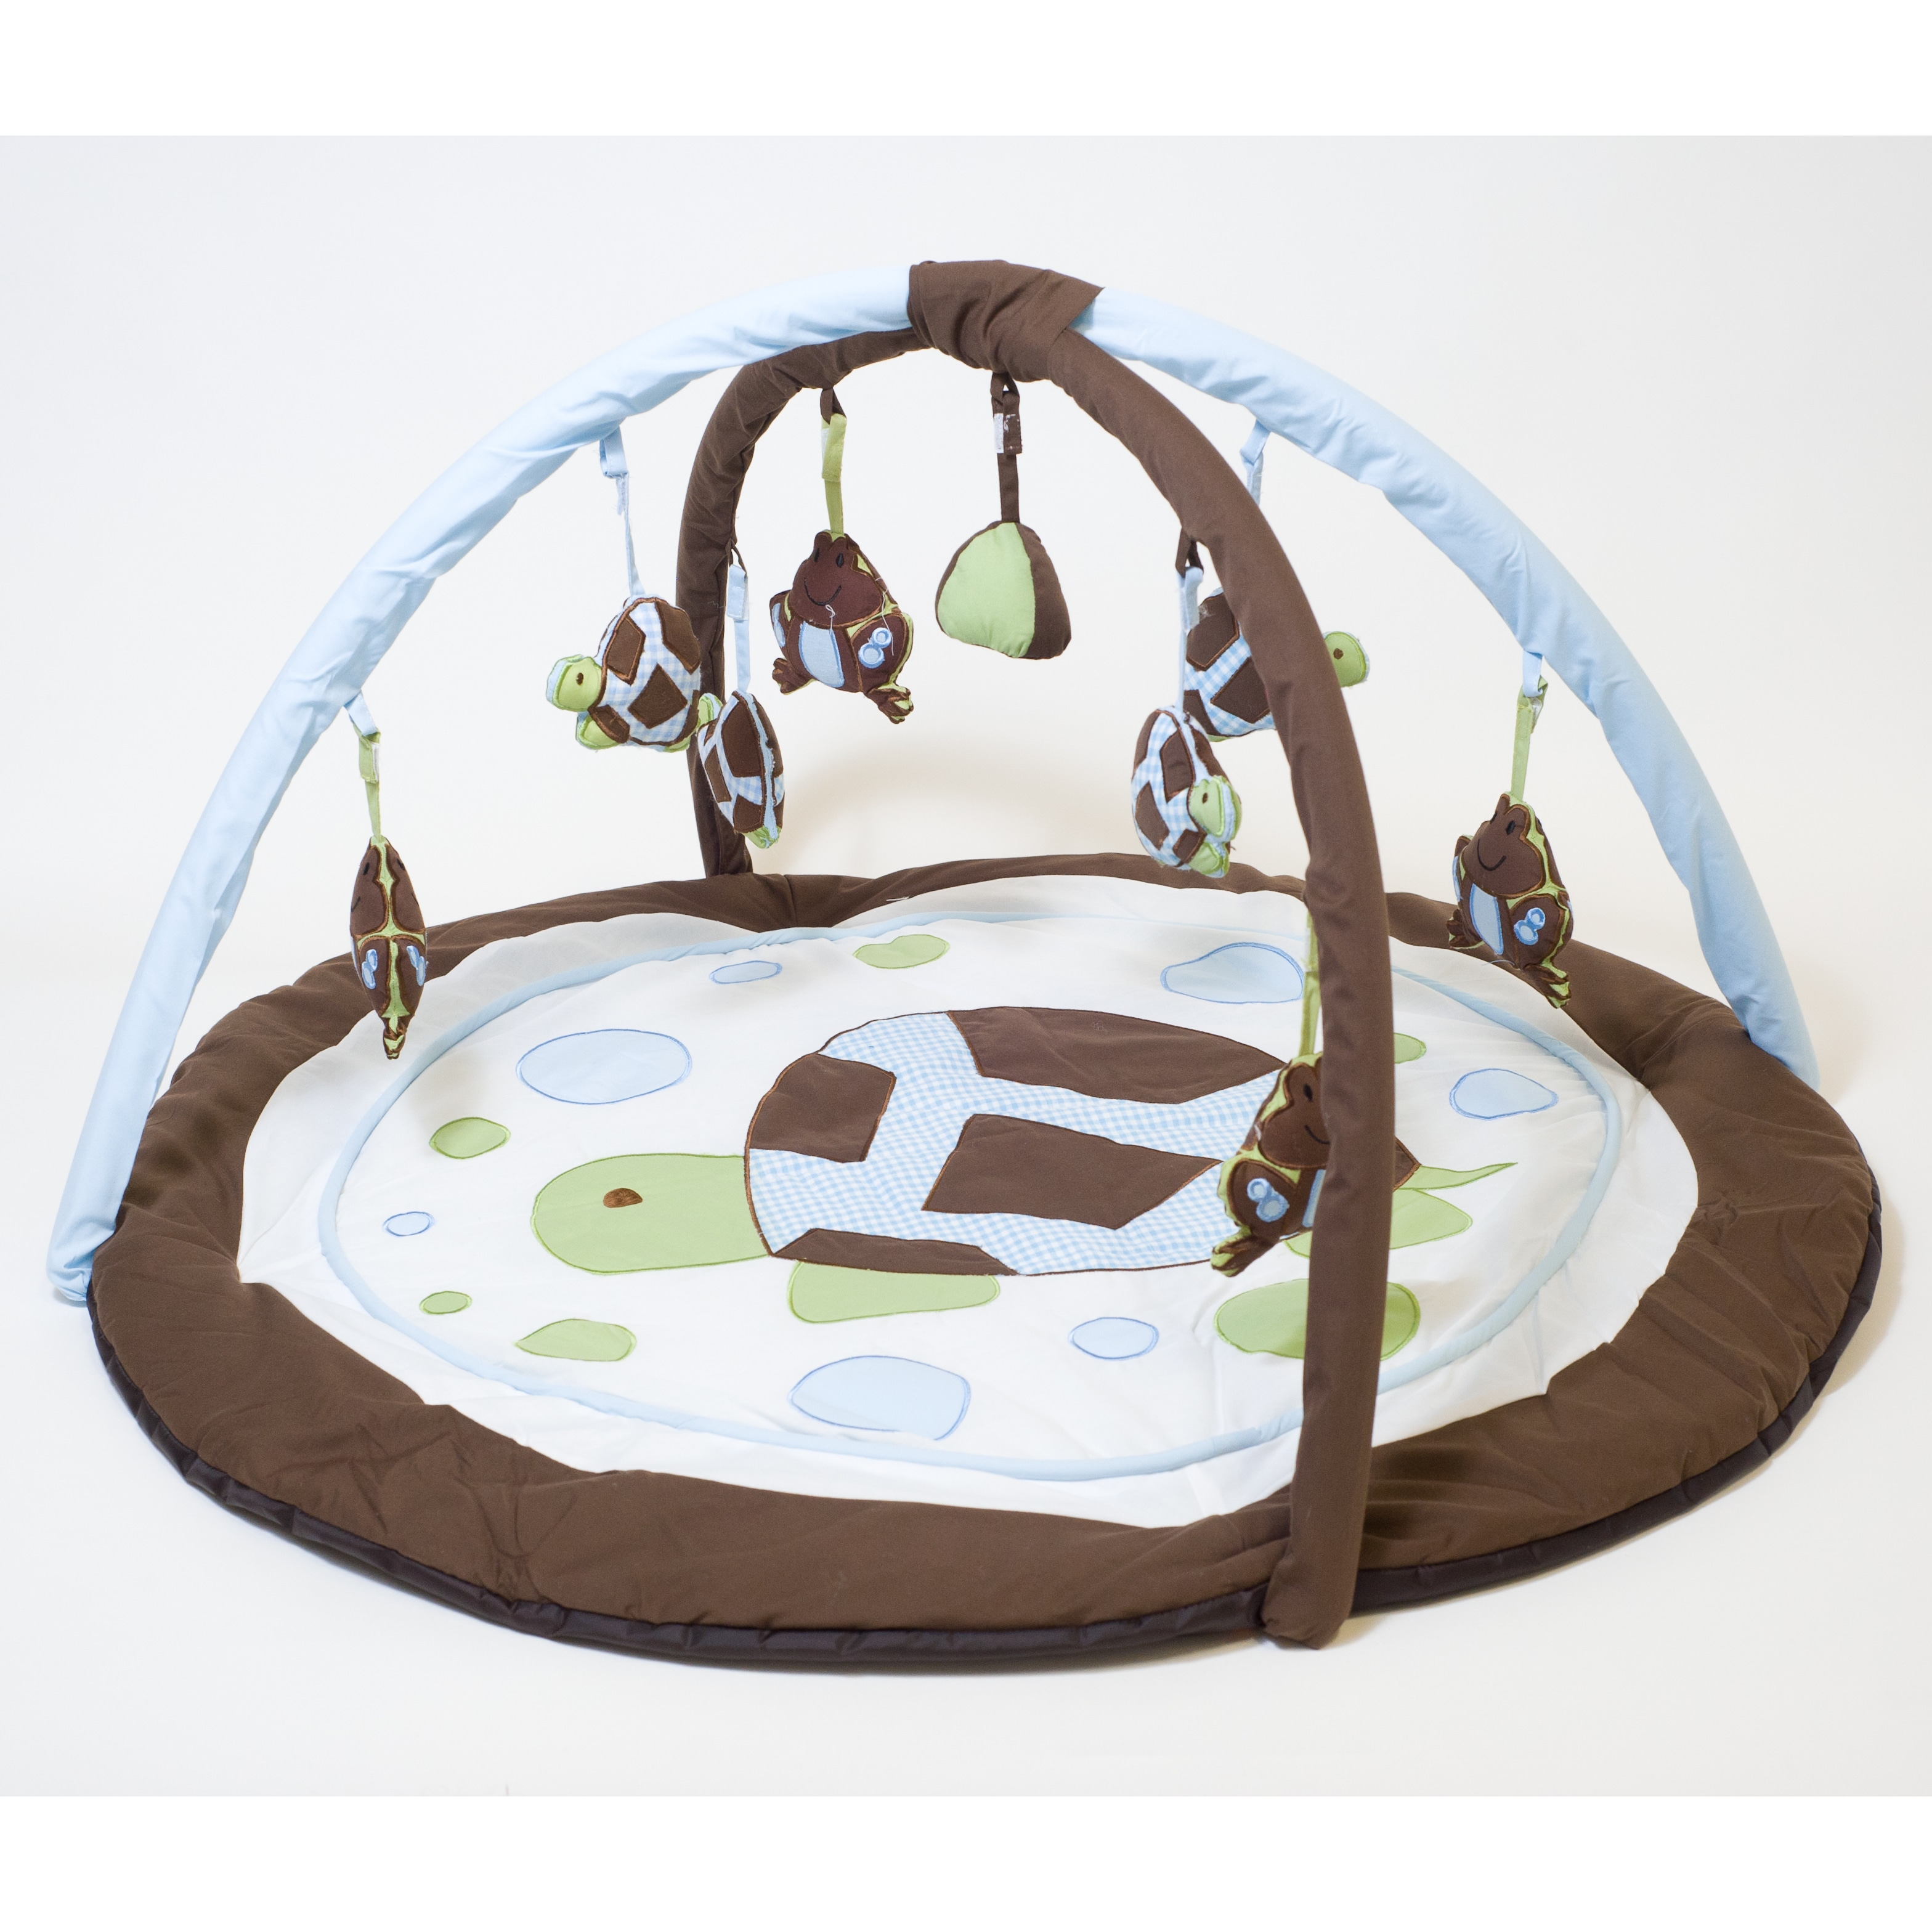 Pam Grace Creations Mr. & Mrs. Pond Playgym